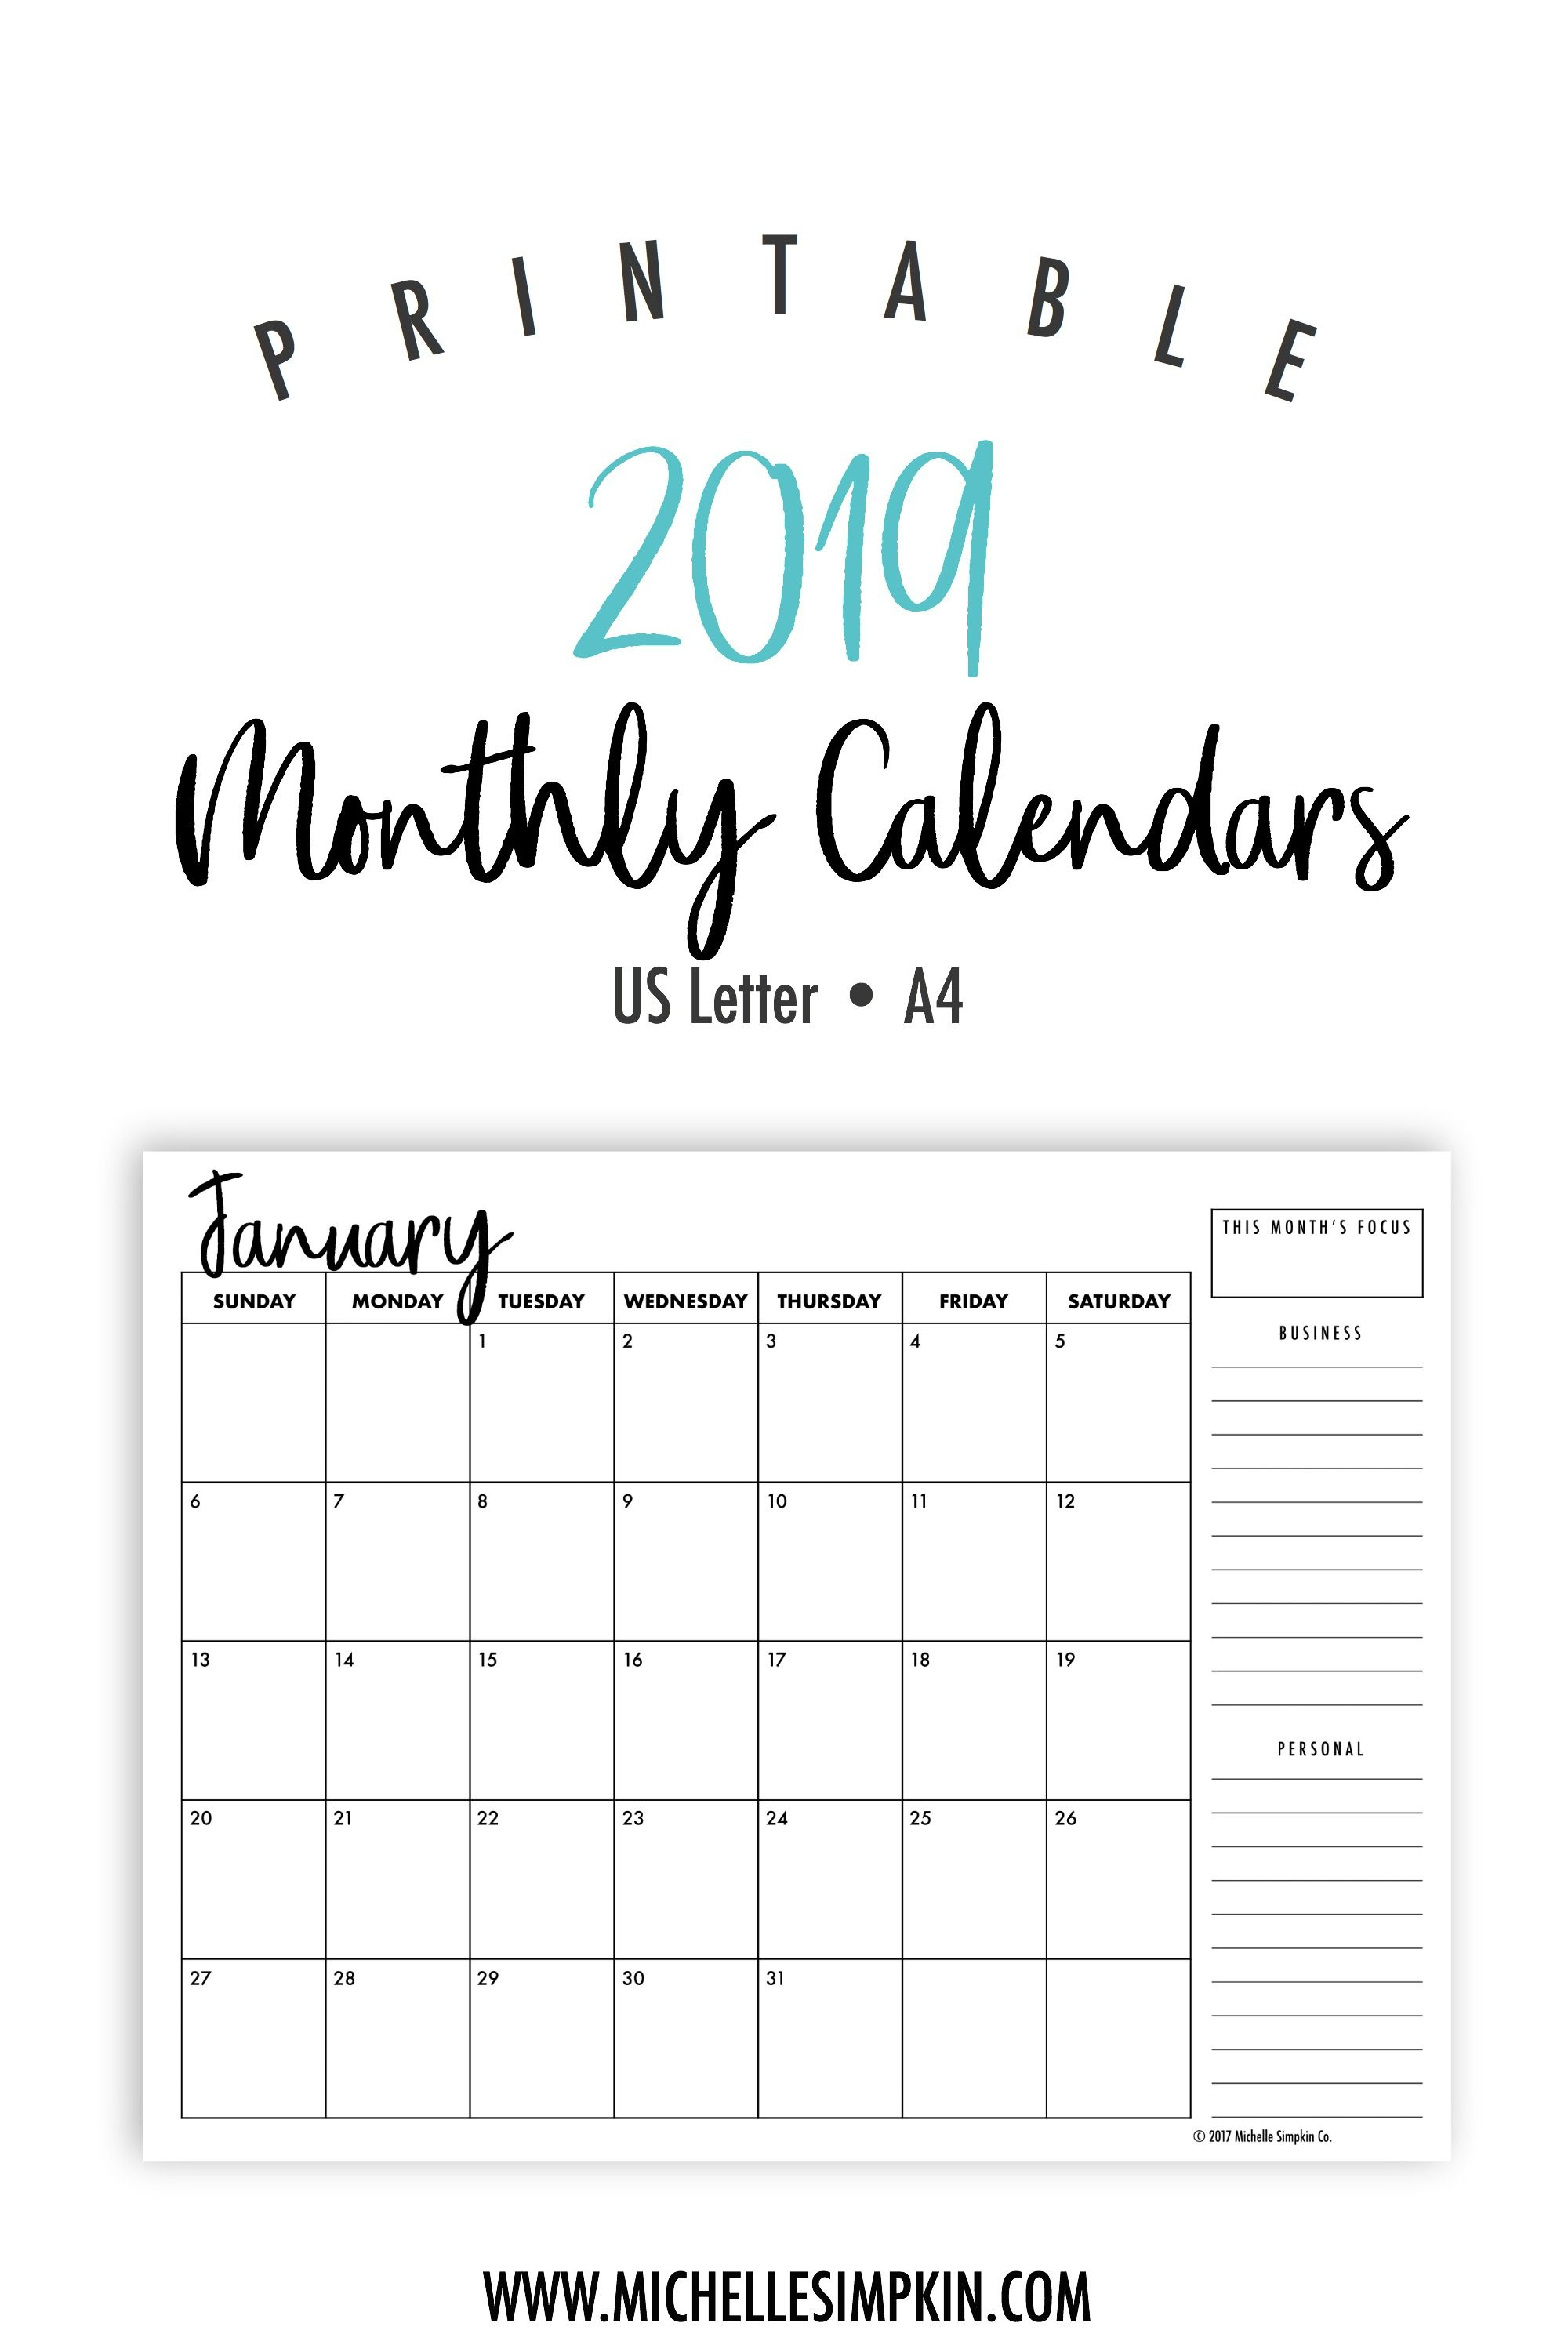 2019 Printable Monthly Calendars • Landscape • Us Letter • A4 for Calendar Blank Printable Monday Start A4